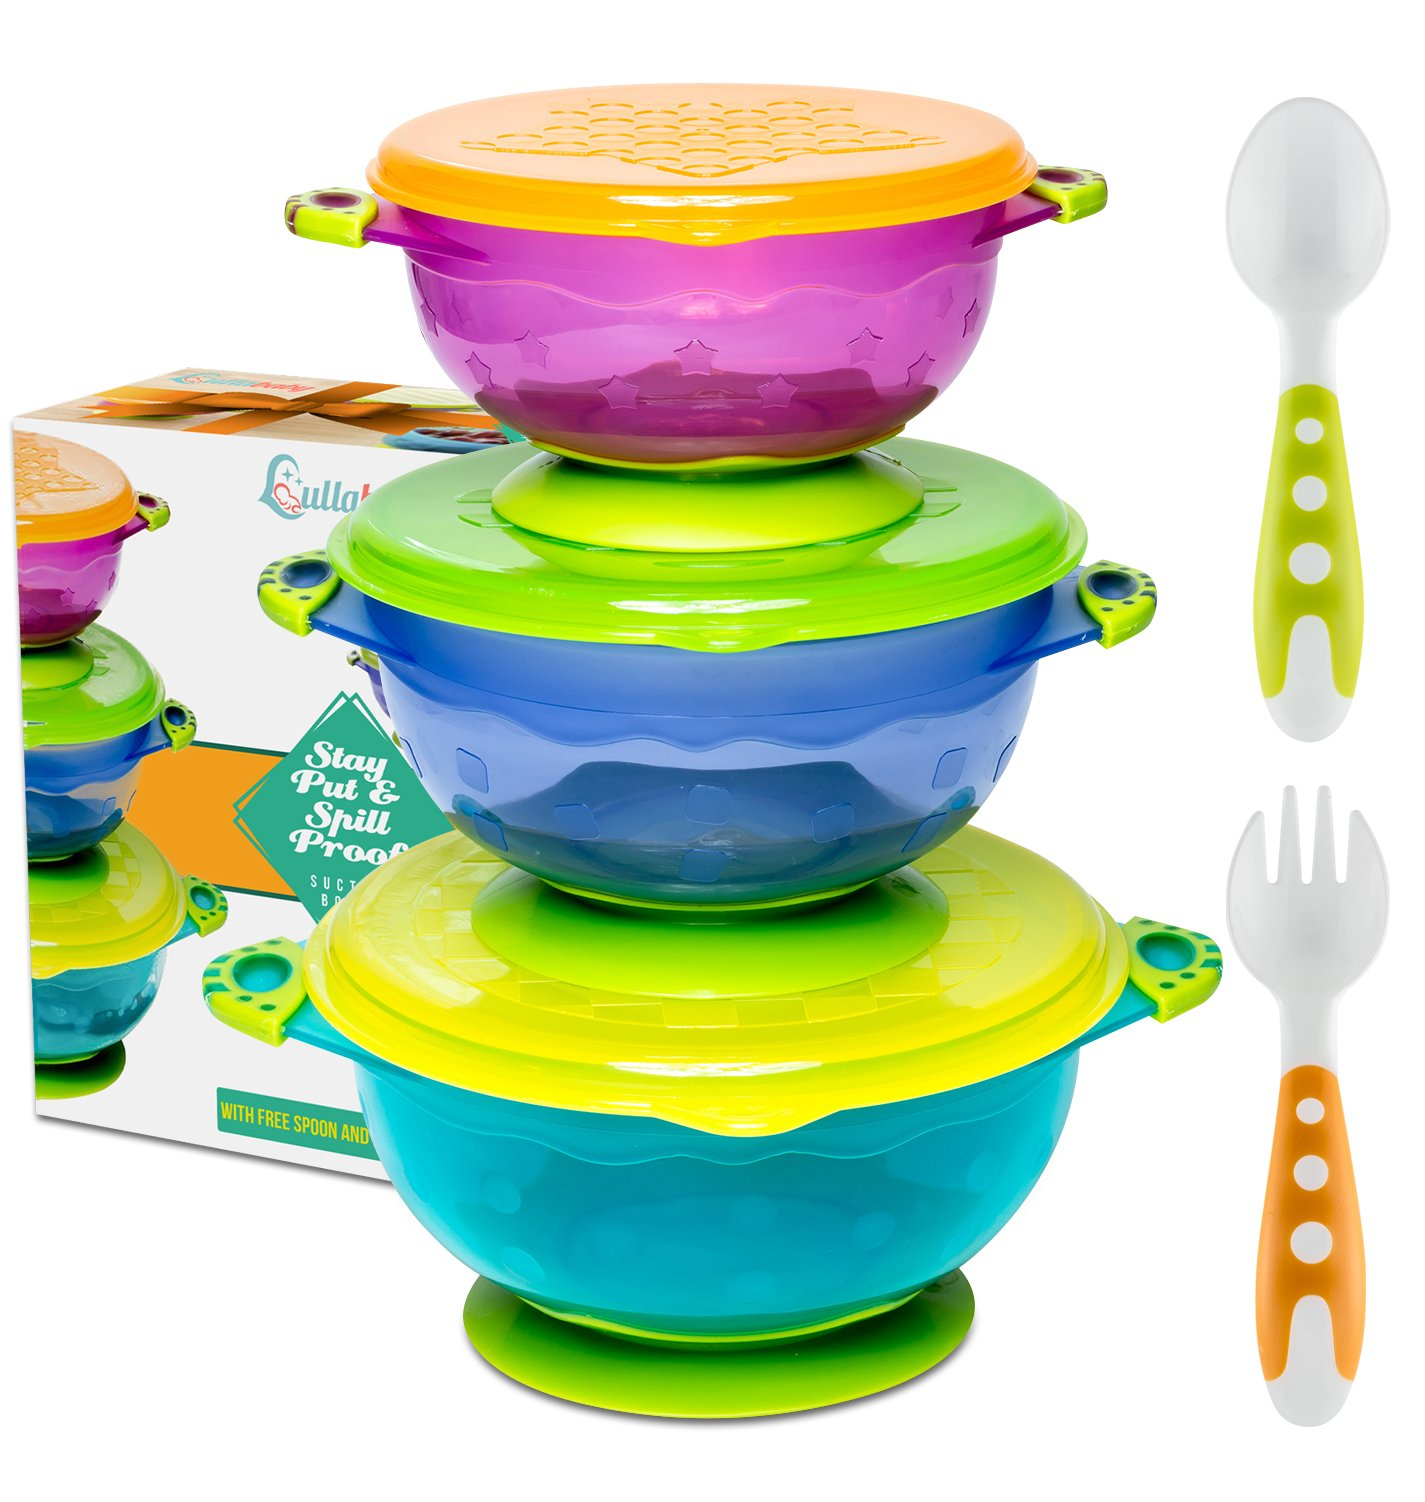 Best Suction Baby Bowls for Toddlers-Toddler Bowls Baby Feeding Set with Baby Utensils | Bonus Baby Spoons and Baby Fork | to Go Baby Bowl with Secure Lids | Suction Plates | BPA Free Suction Bowl by Lullababy